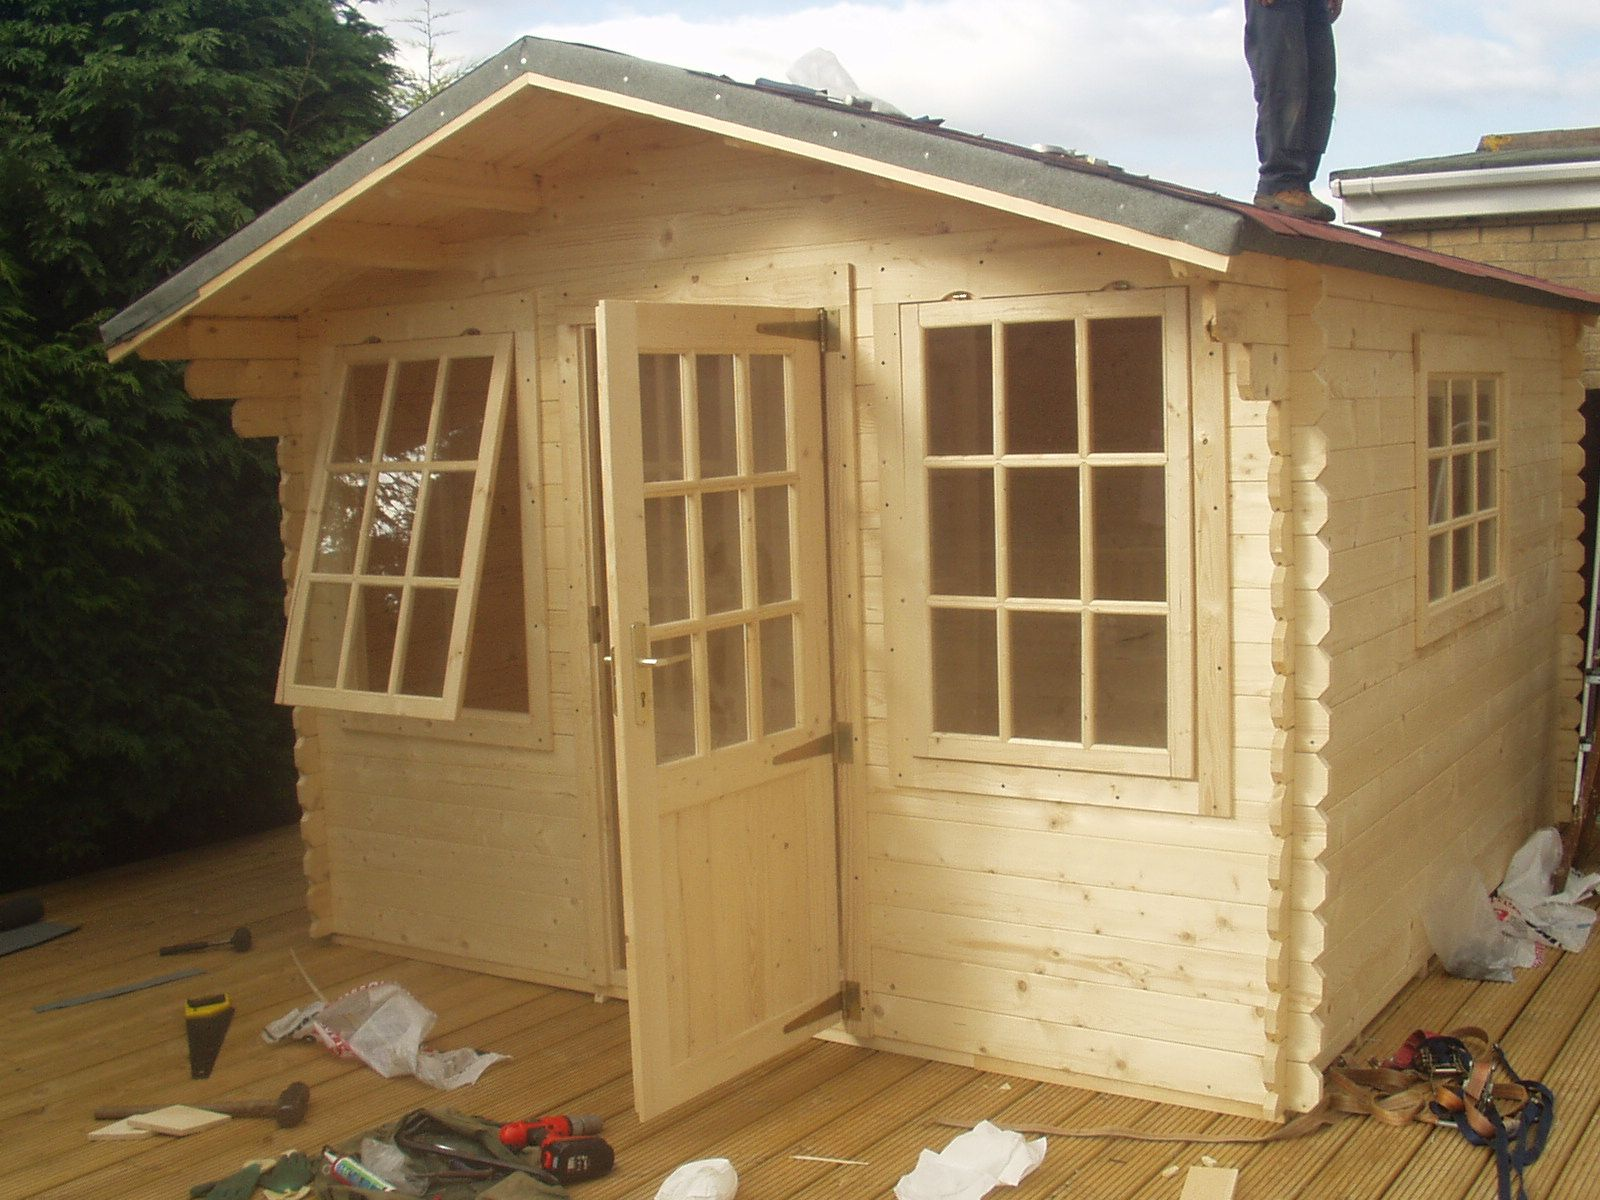 Garden Sheds Blueprints garden shed plans |  skipping any parts or trying to rush